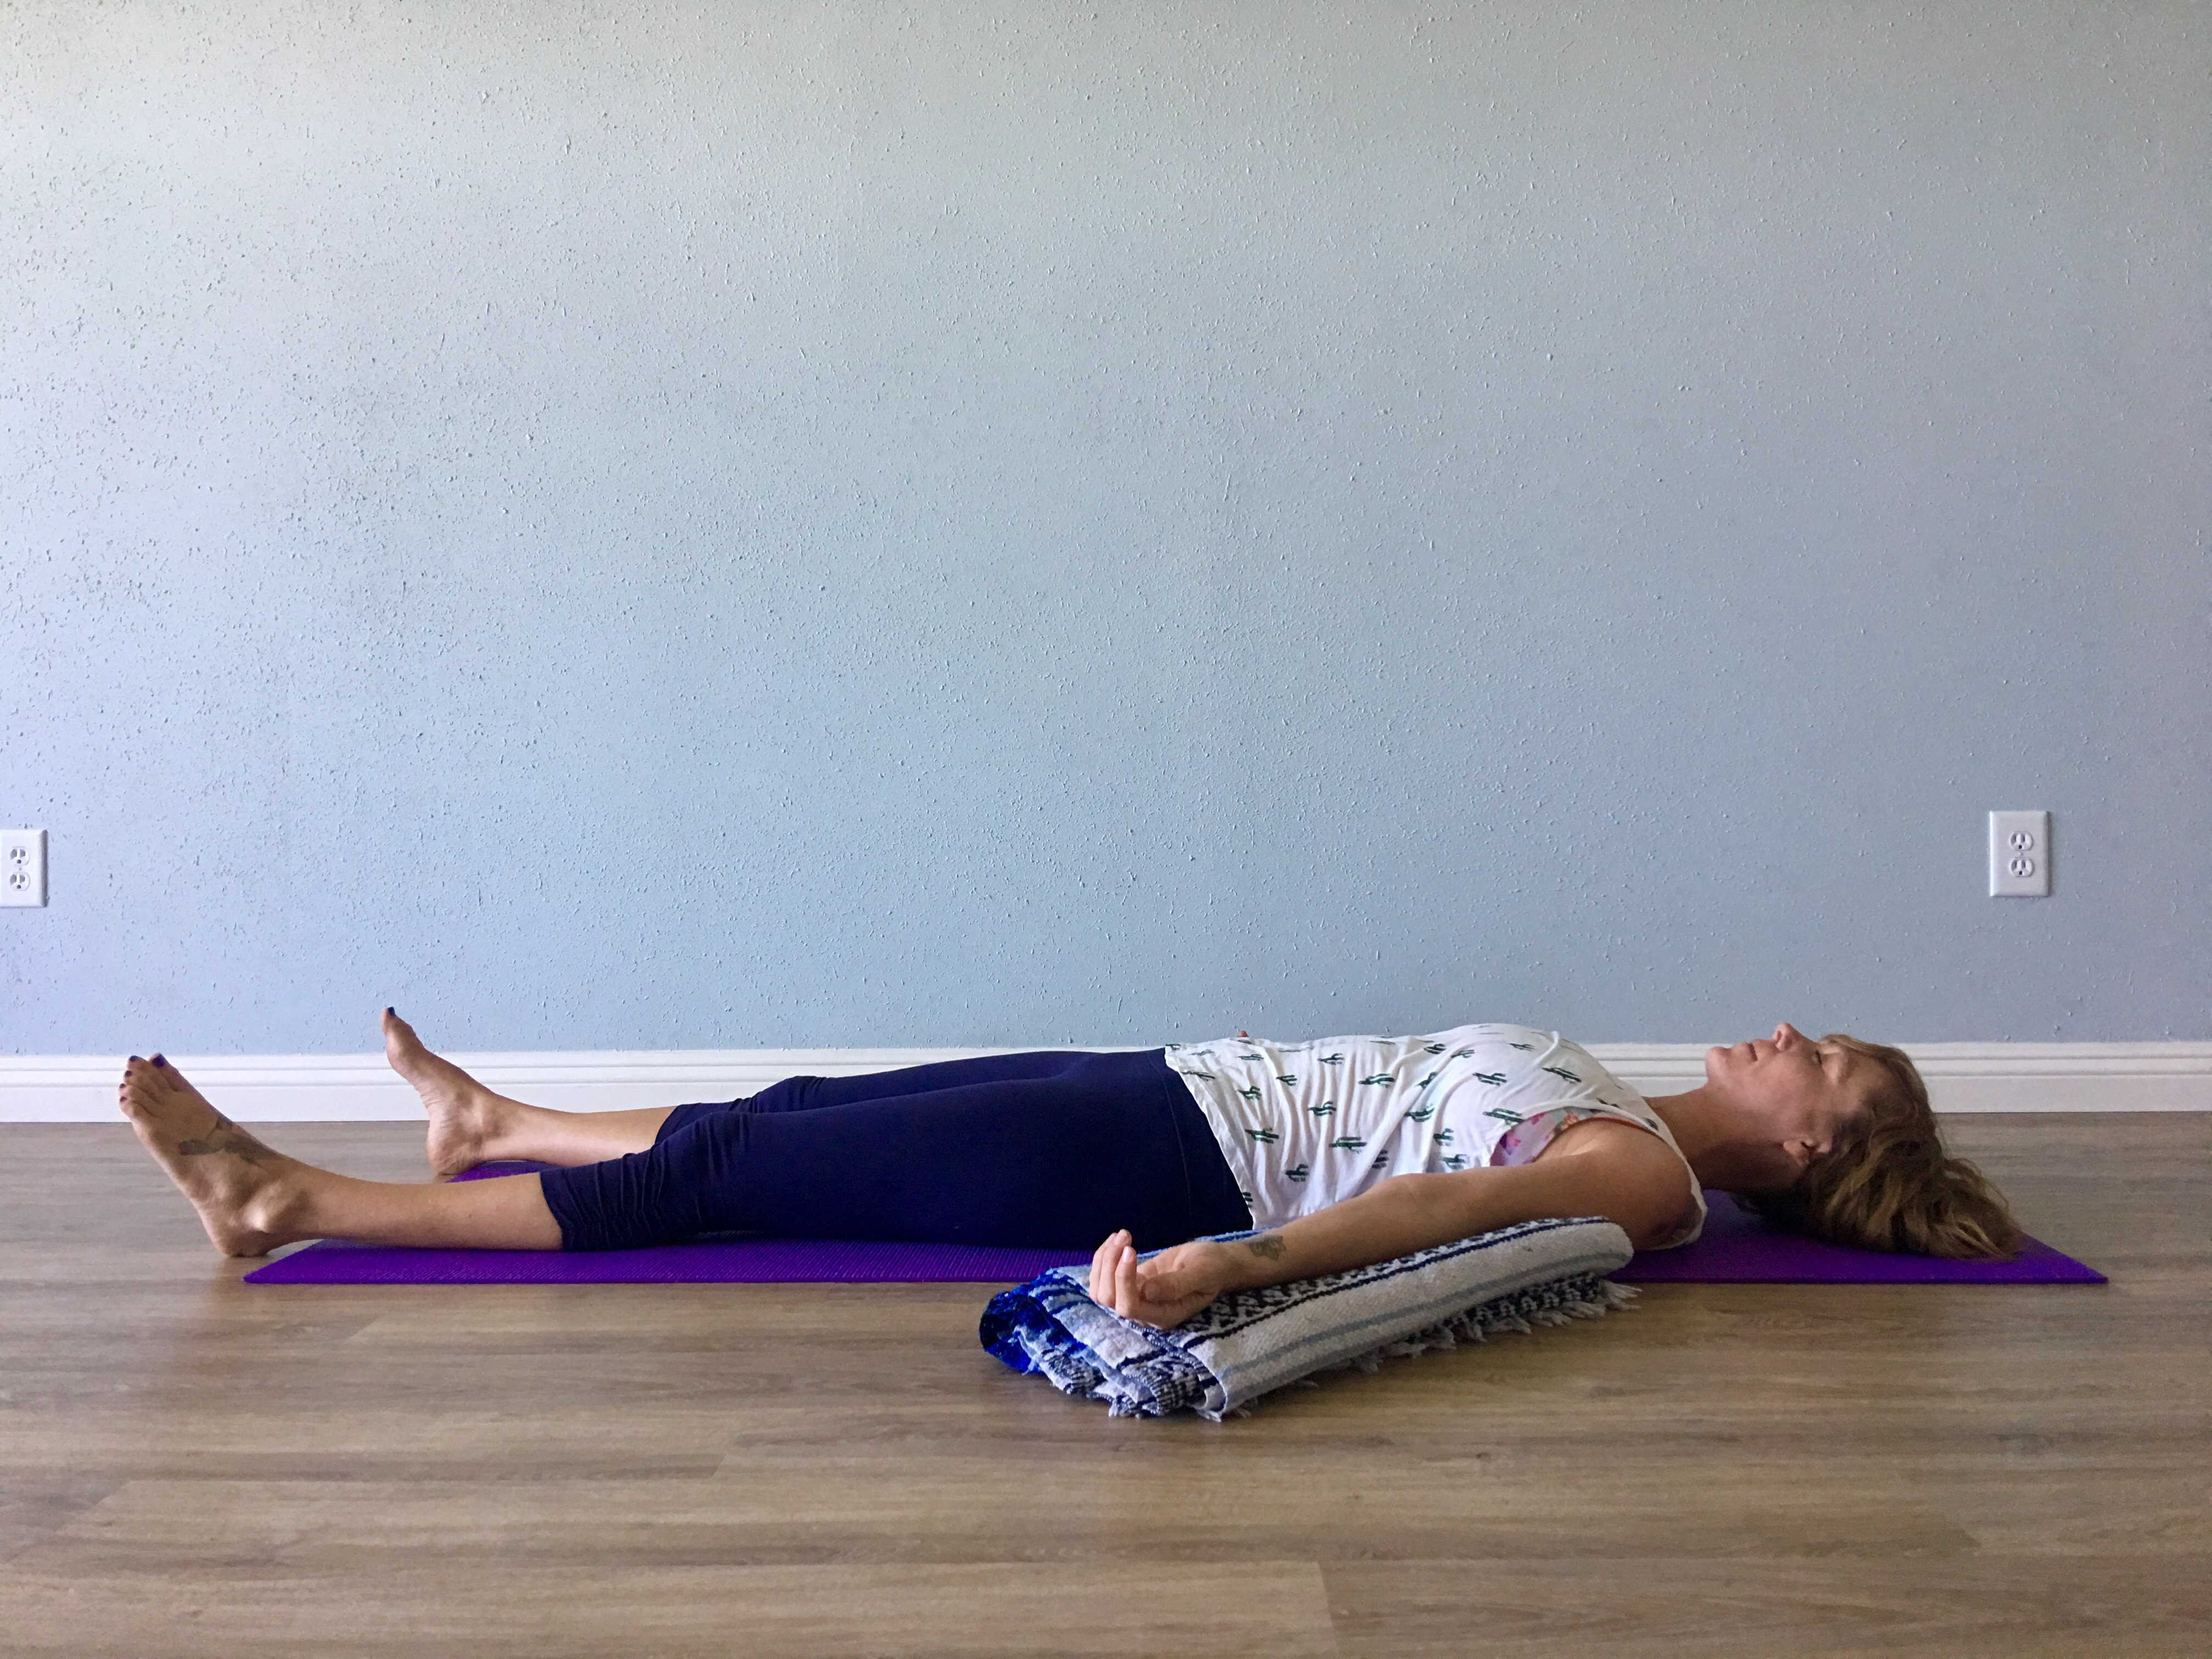 woman practicing yoga in modified savasana (corpse pose) with blanket support under arms